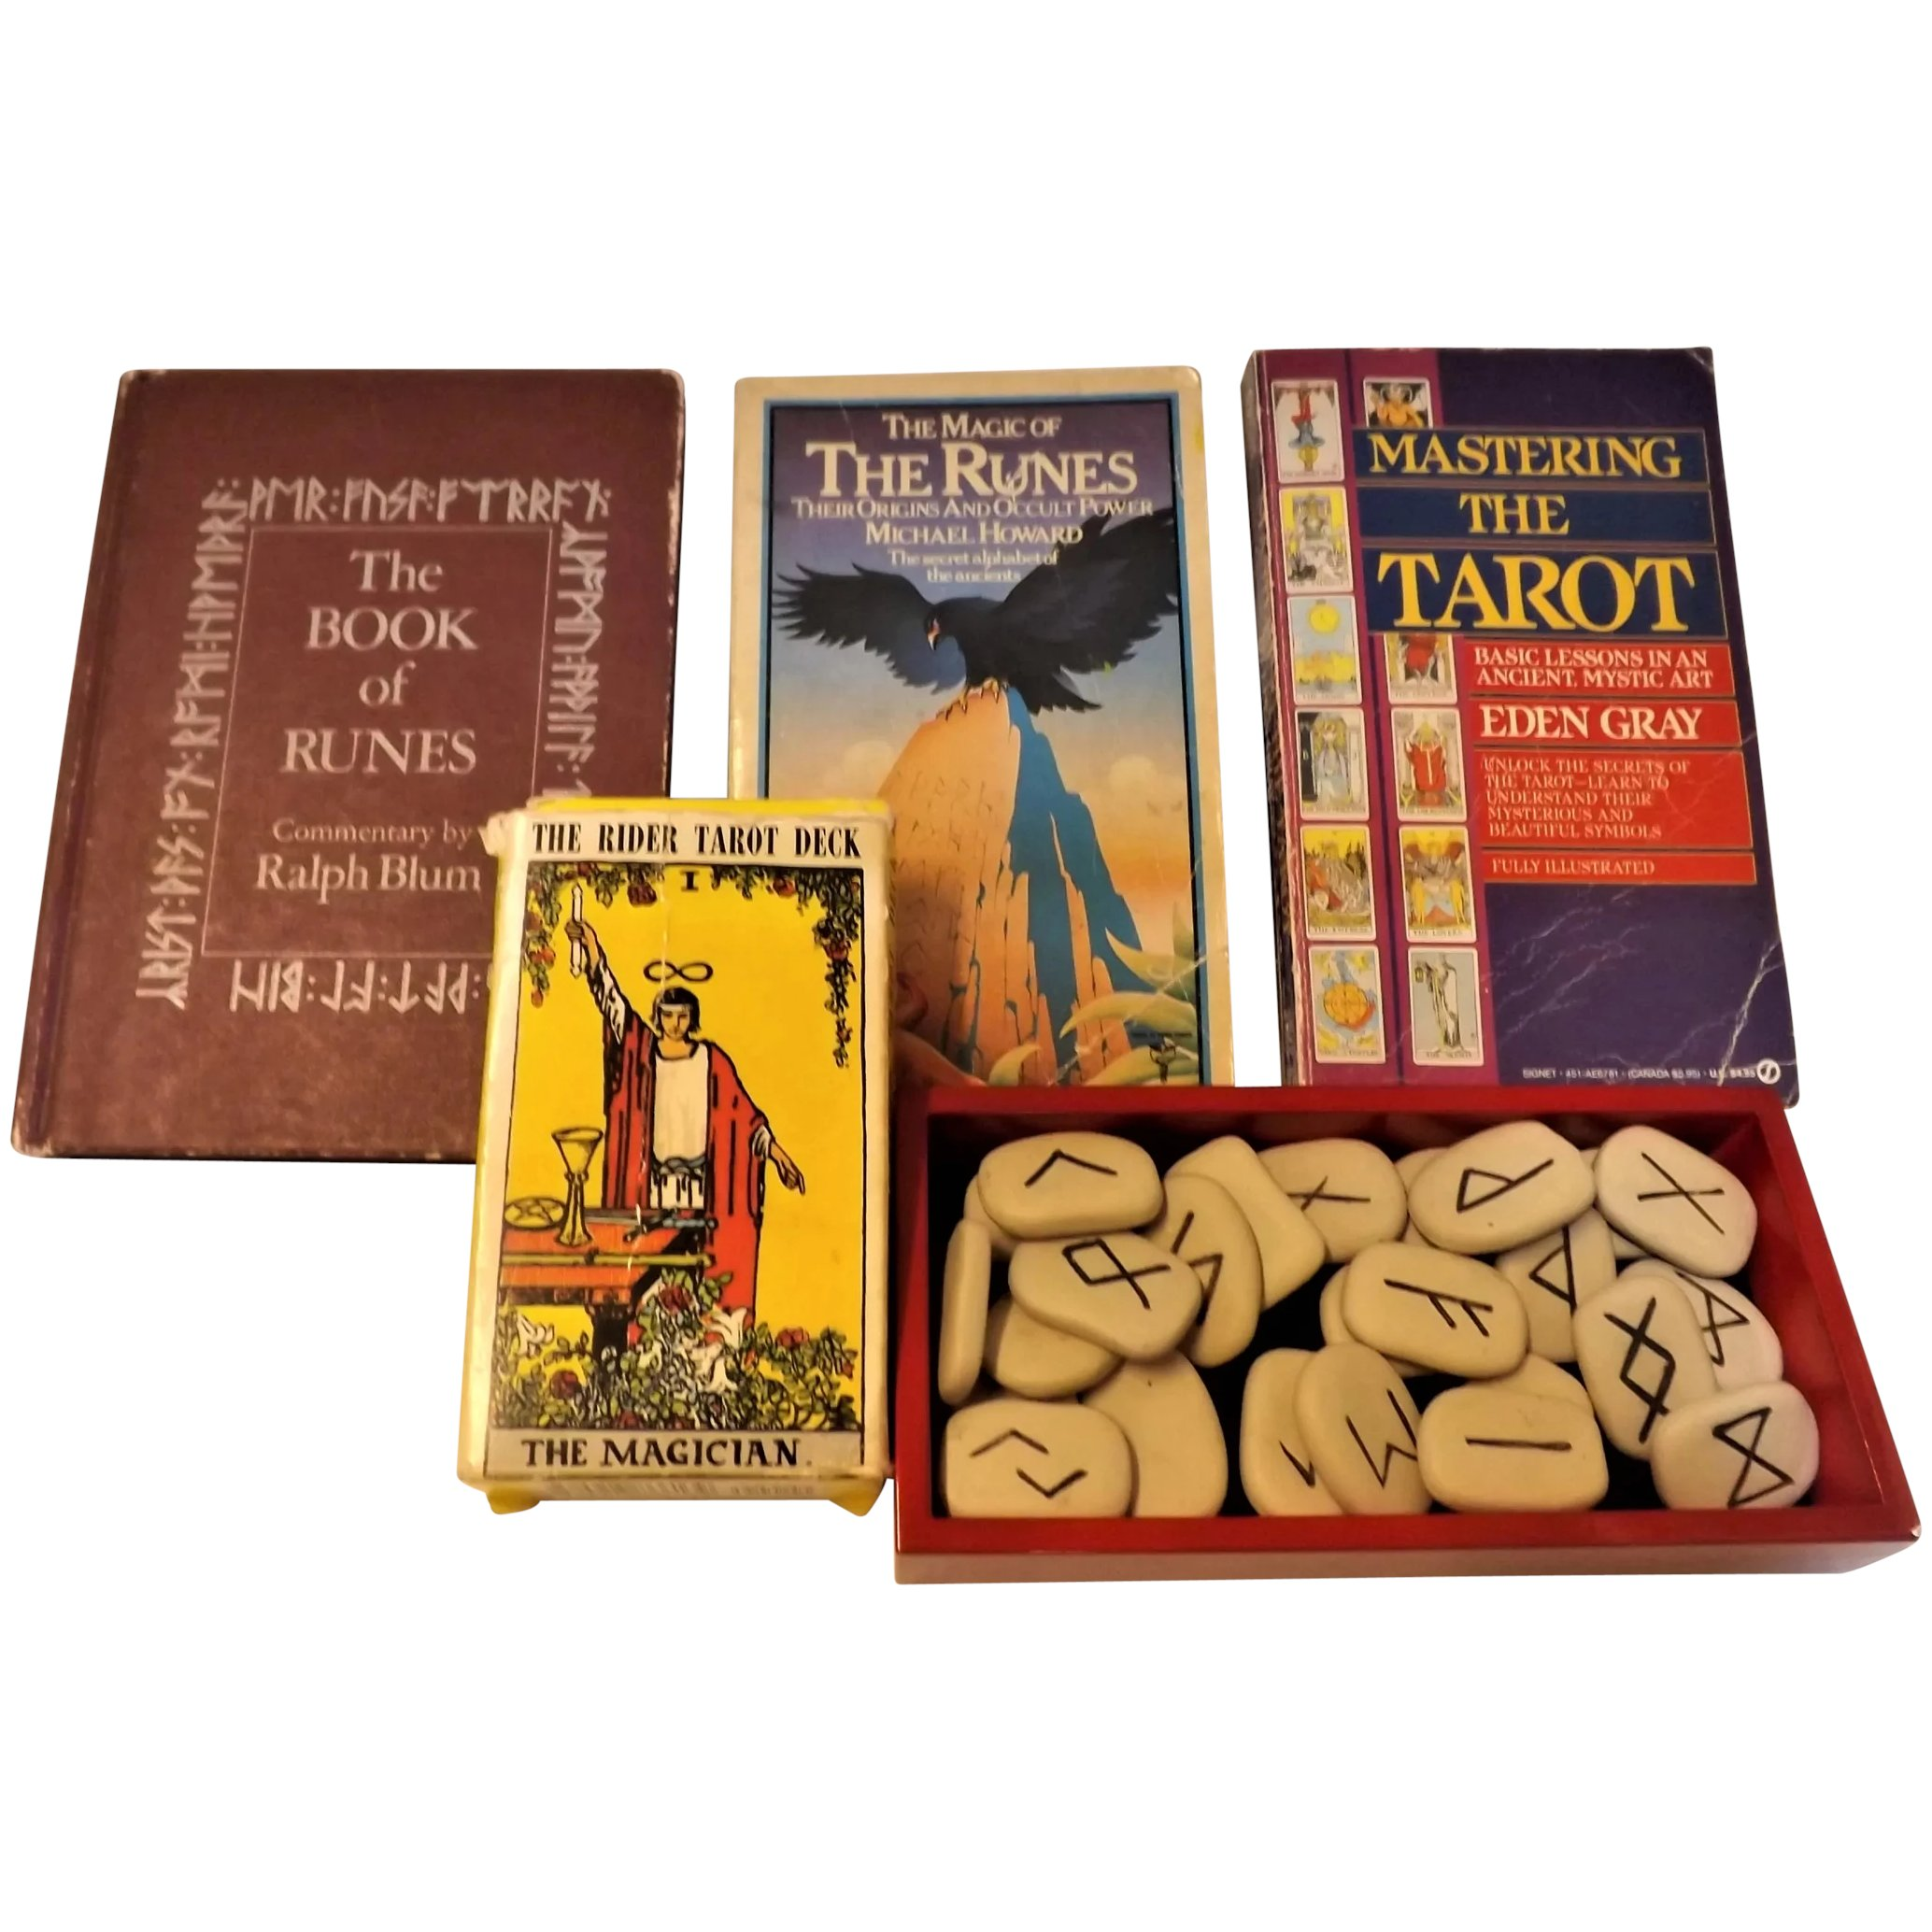 Vintage TAROT Cards and RUNES Set With Books